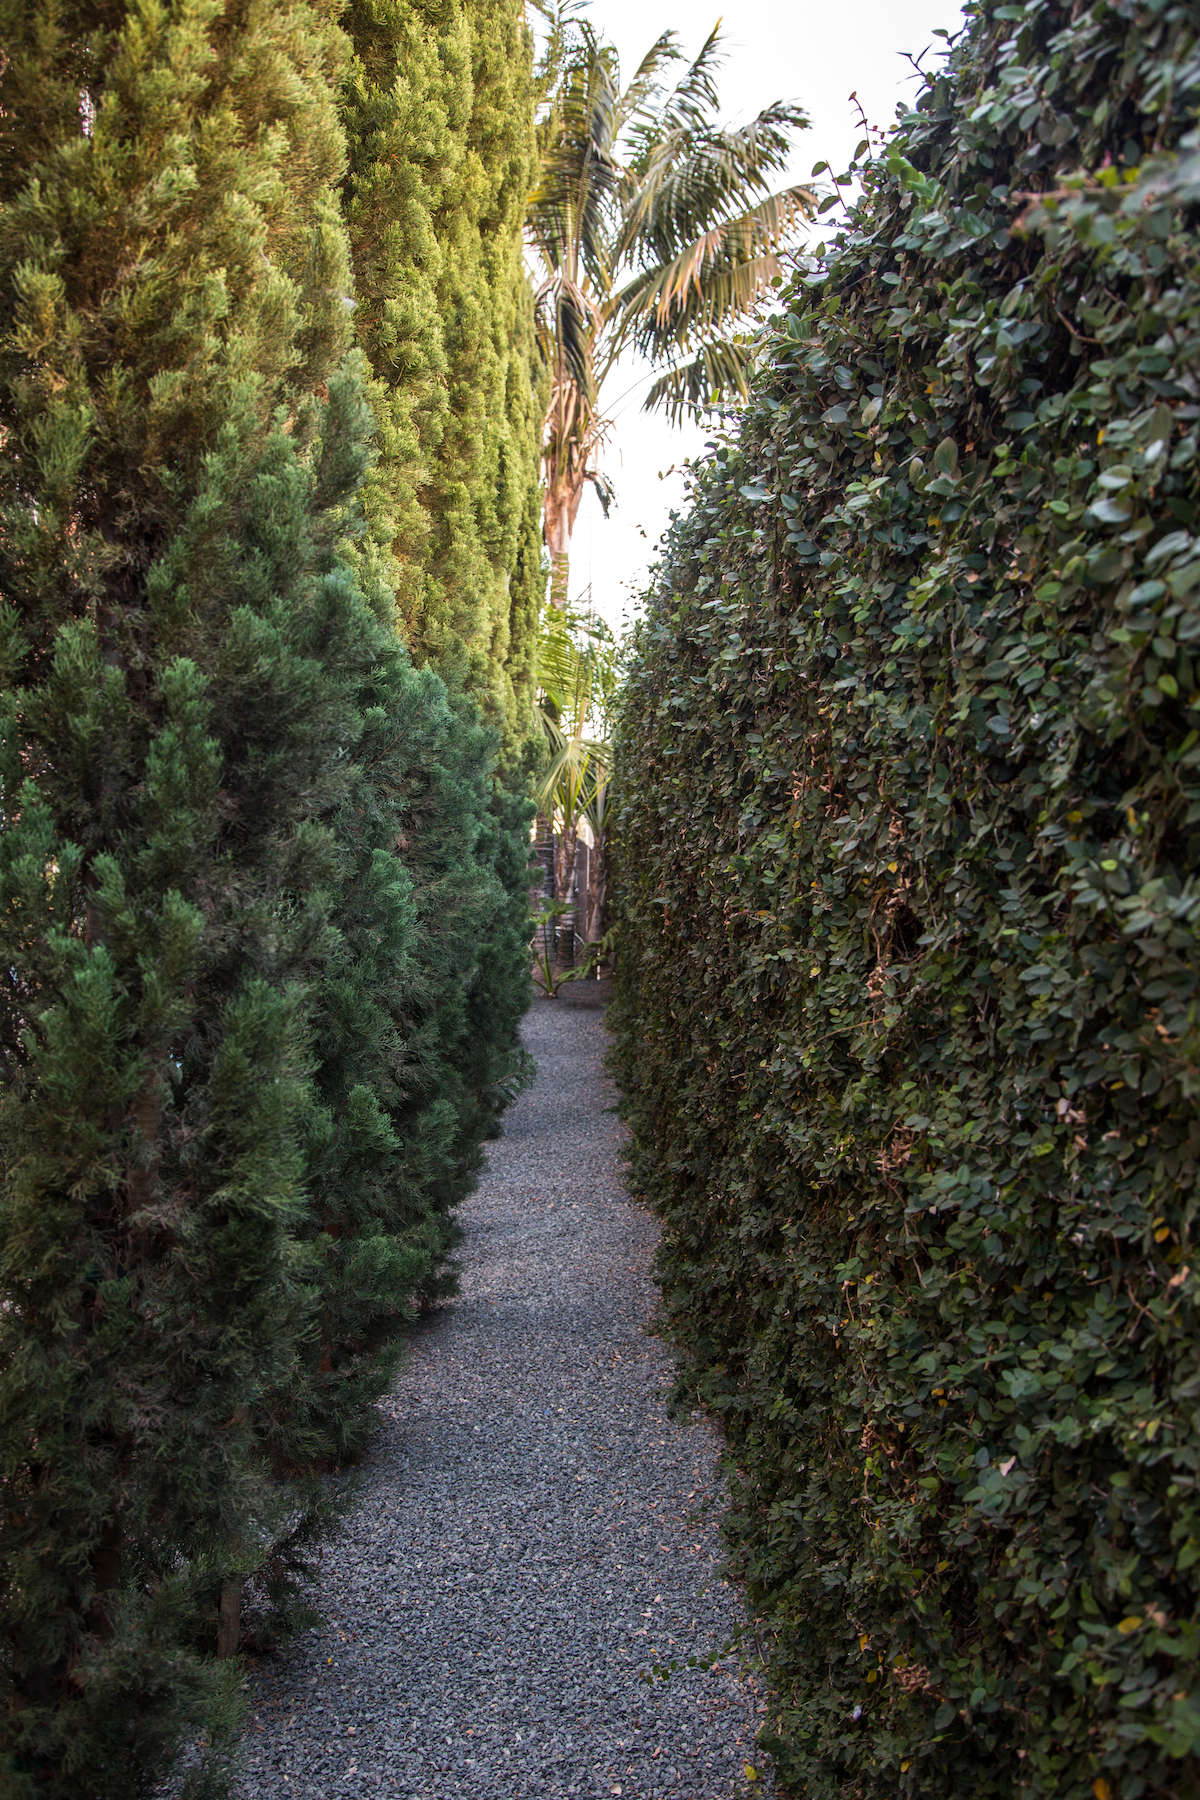 Row of cypress trees and garden perimeter wall covered in vines